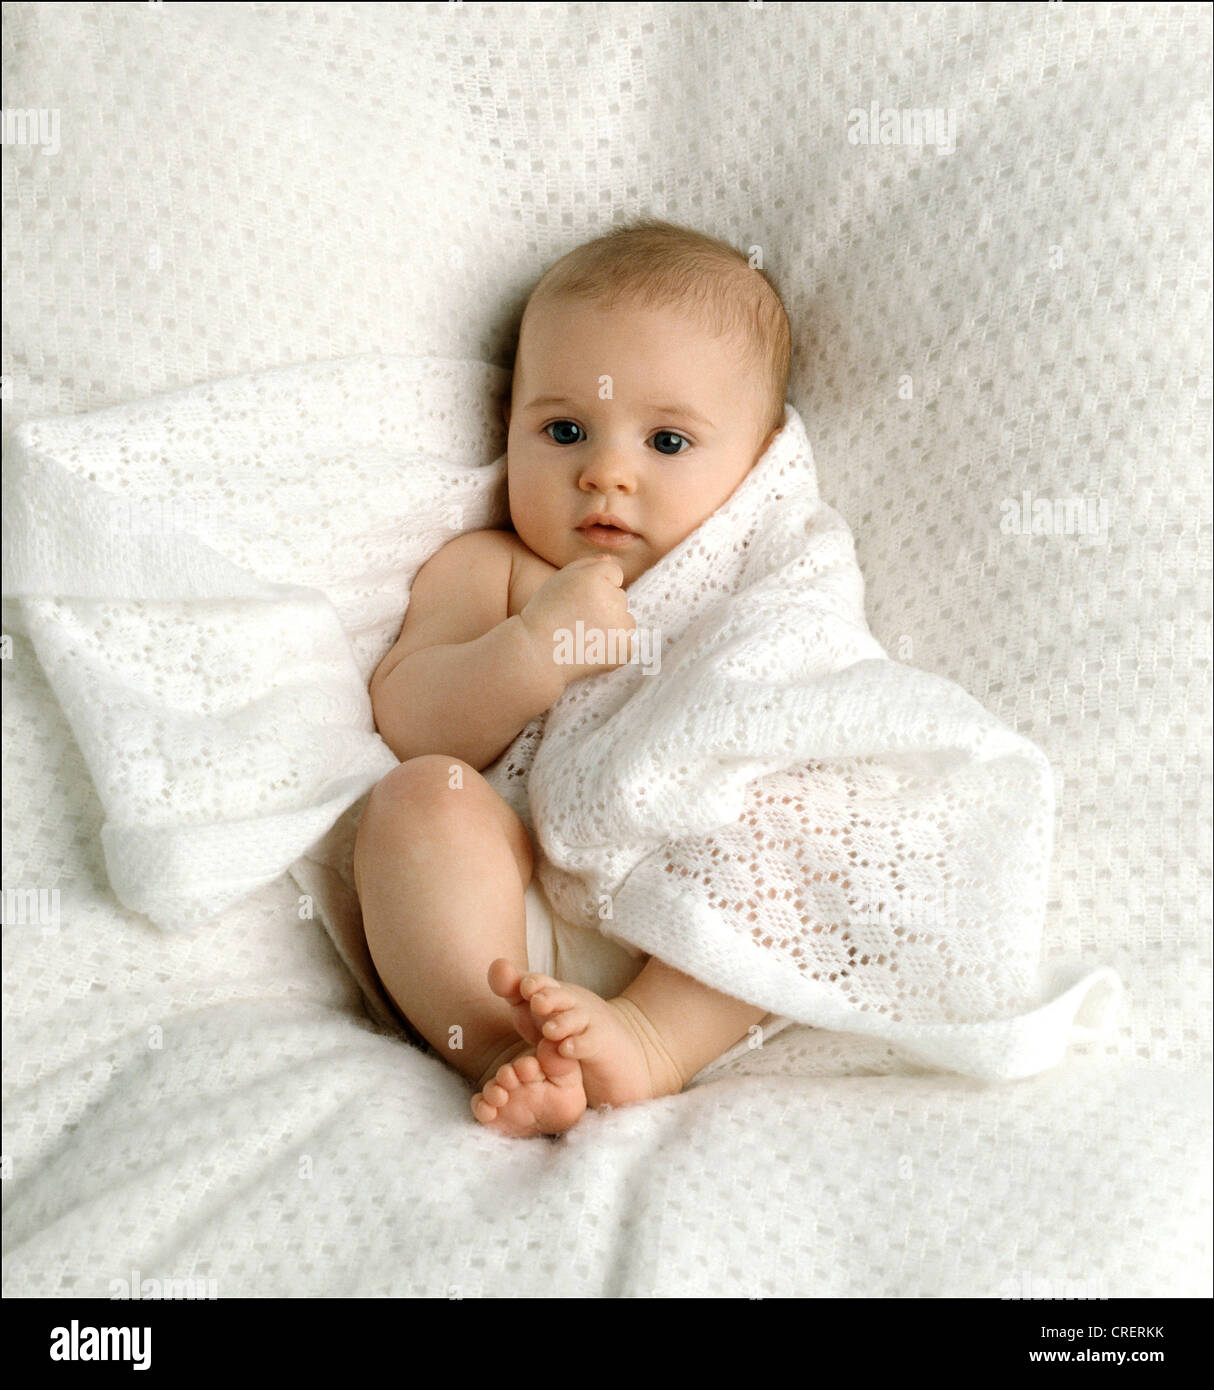 Contented Sleepy 6 Month Old Baby In Nappy Lying On Soft White Blanket Wrapped Shawl